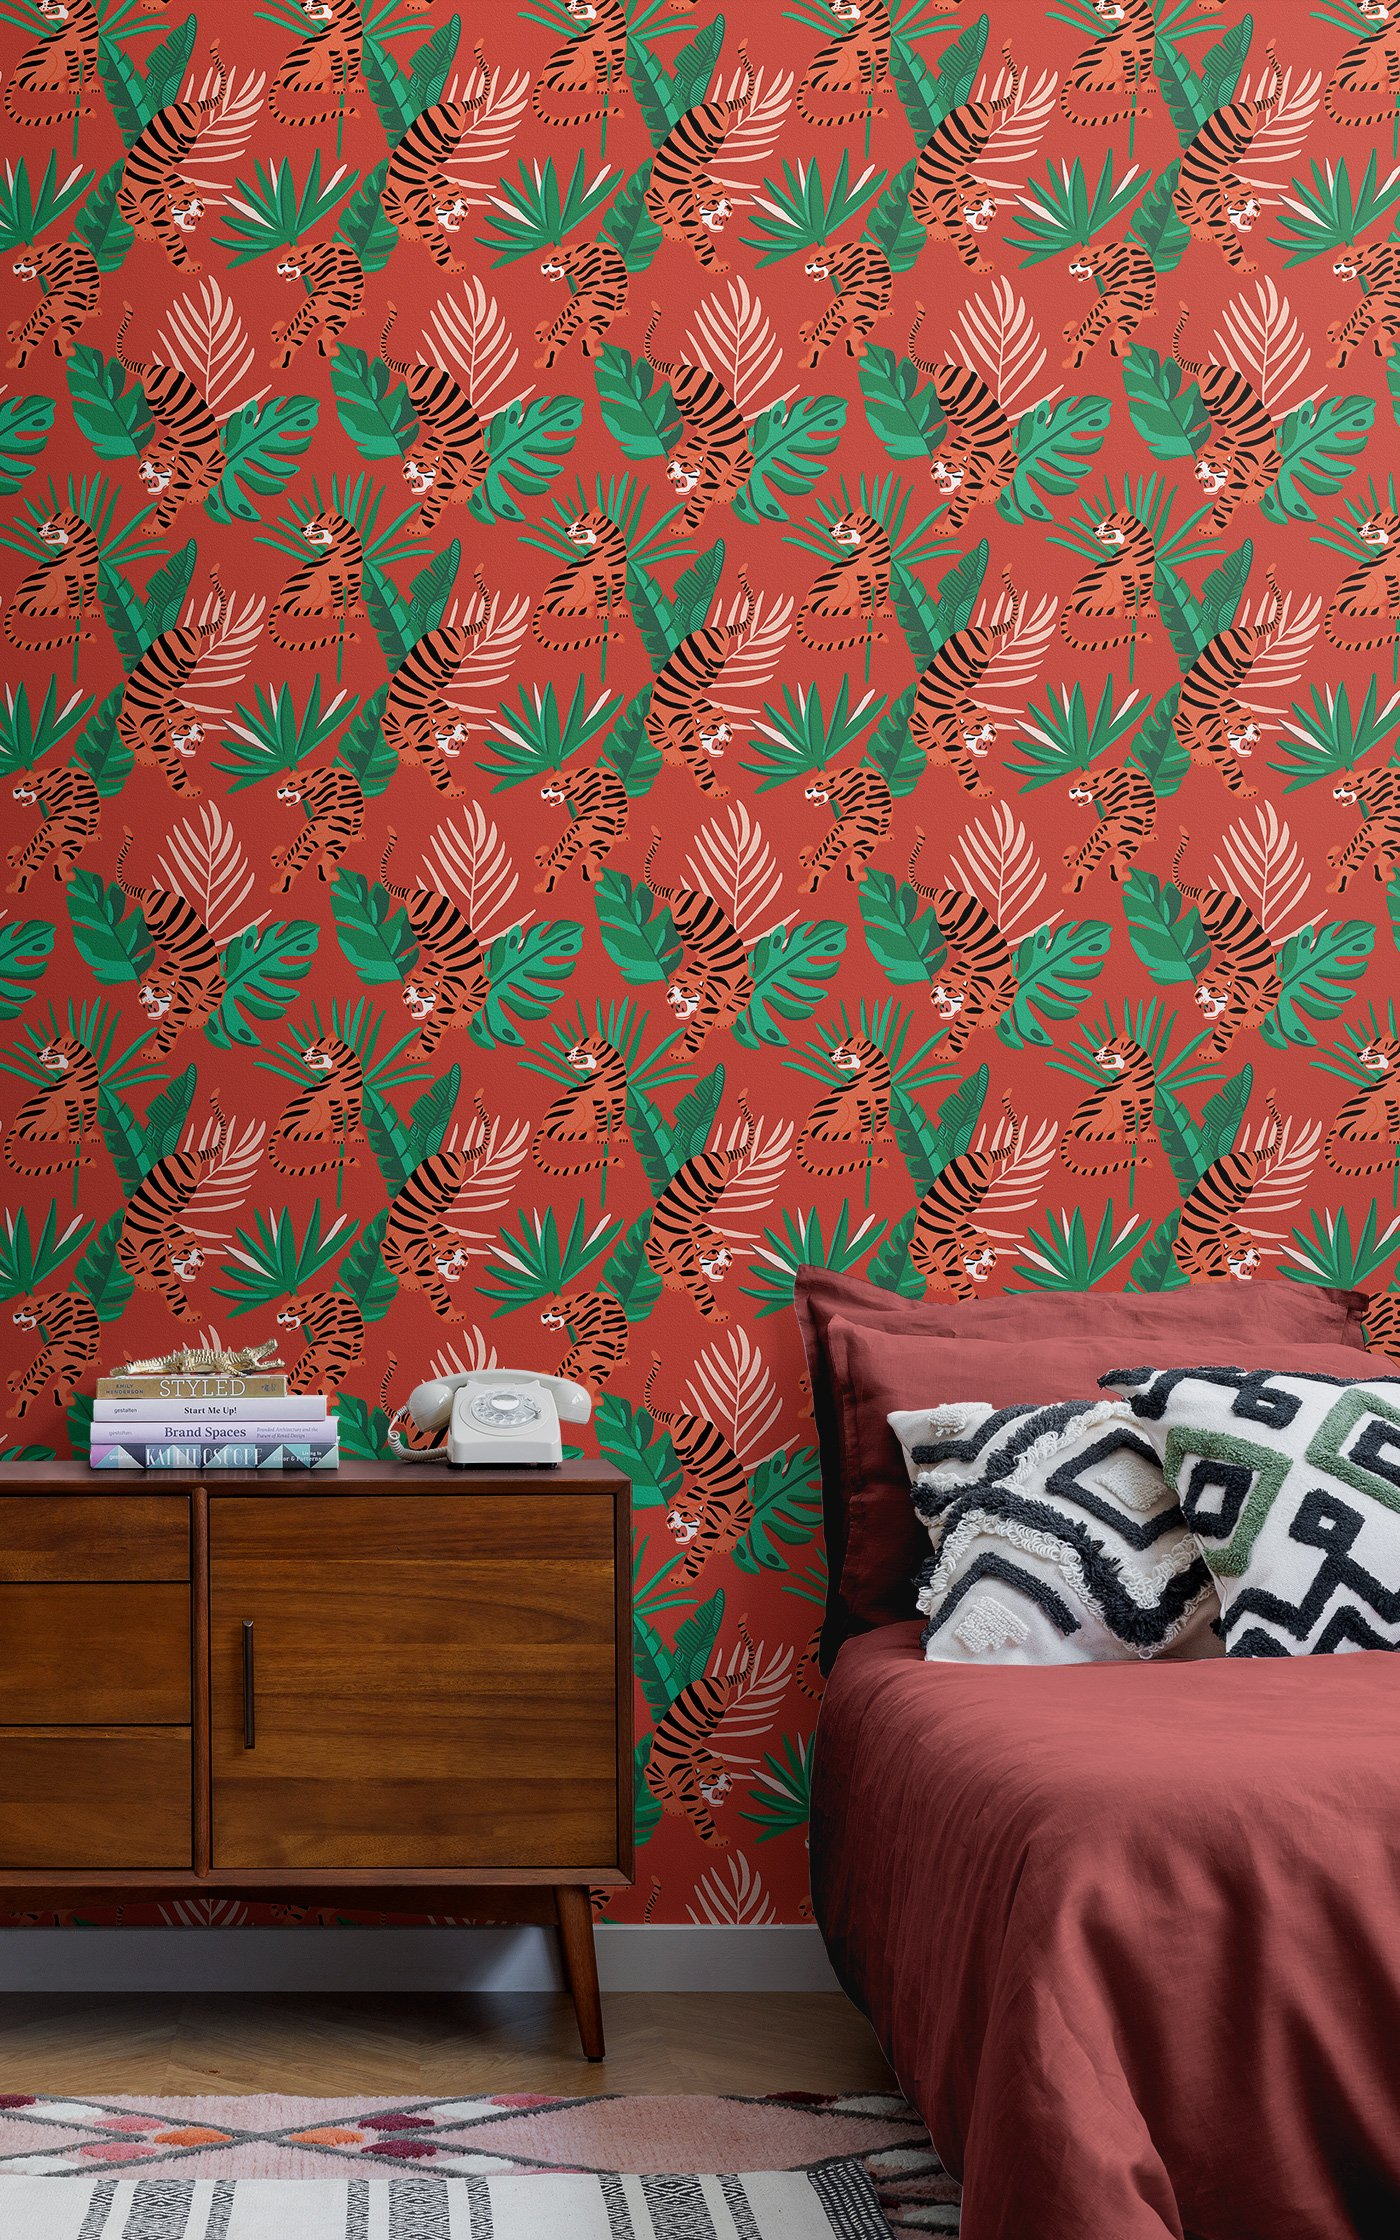 Esszimmer Modern Hell Wes Anderson Inspired Wallpaper For An Adventurous Interior Style